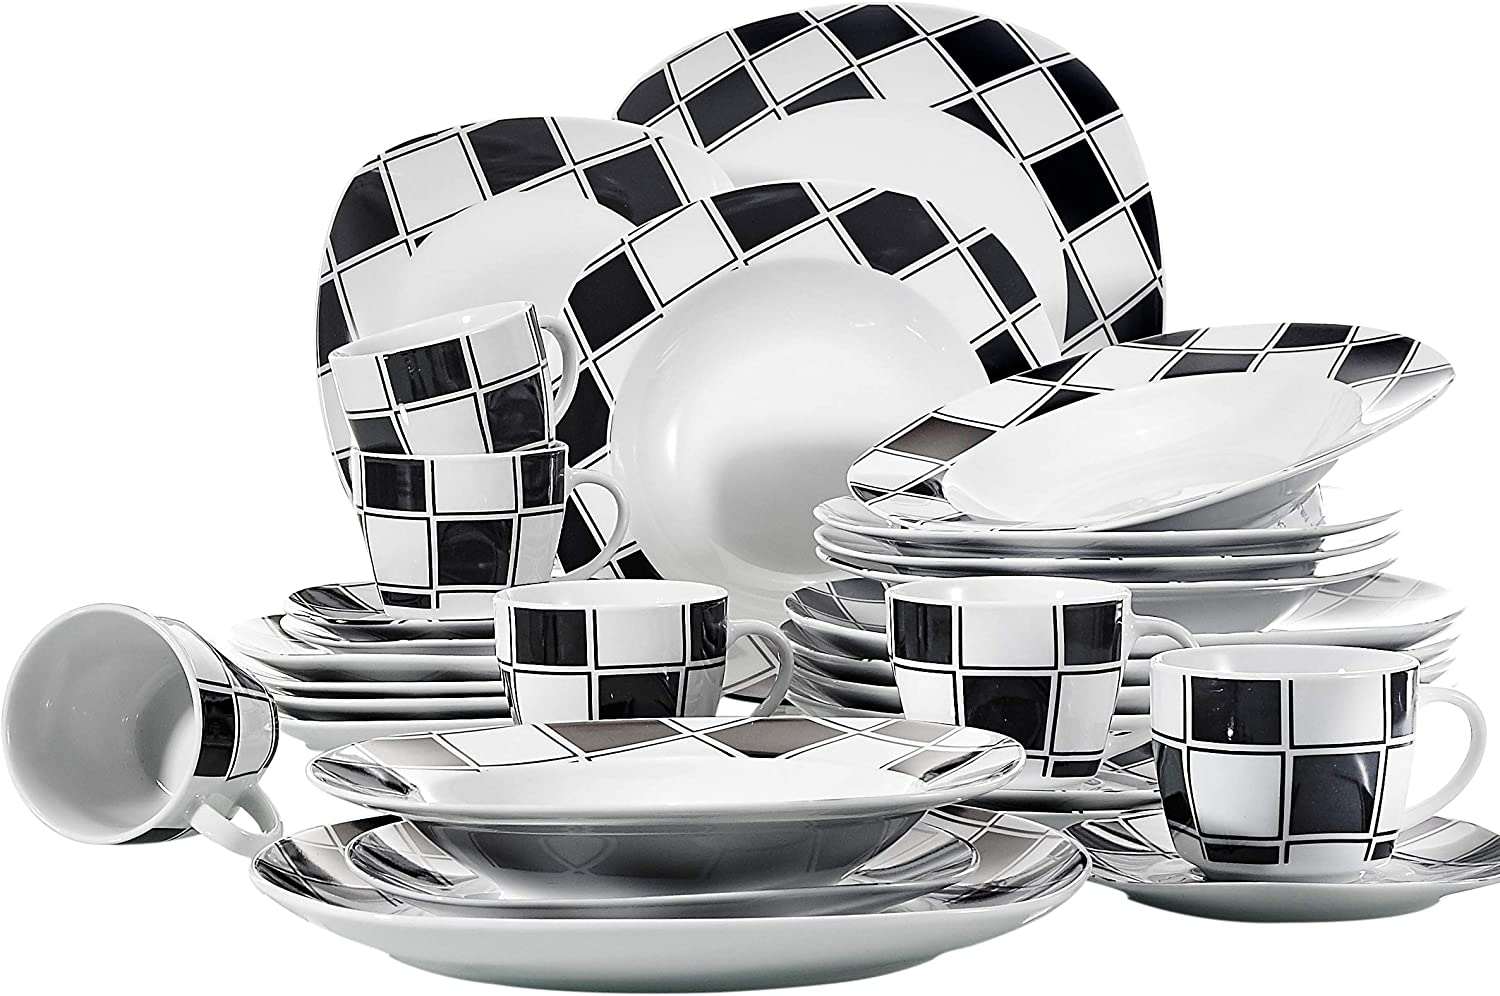 VEWEET 30-Piece Ceramic Tableware Black Grids Patterns Kitchen Porcelain Sets Dinner, Soup, Dessert Plate, Saucer and Mug, Nicole